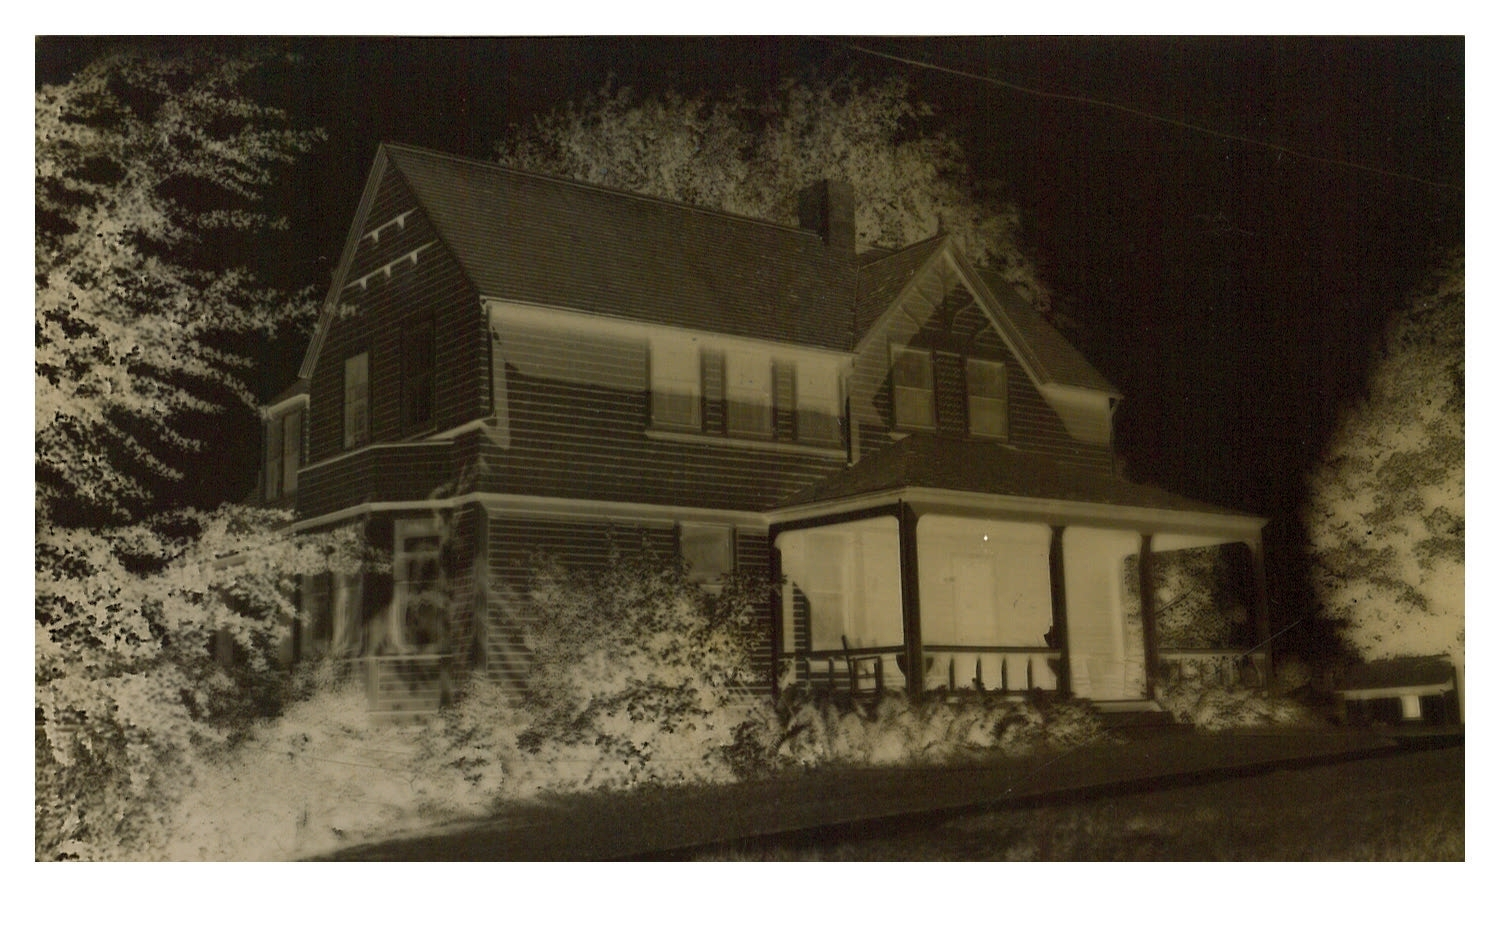 photo of Unidentified House - Inverted